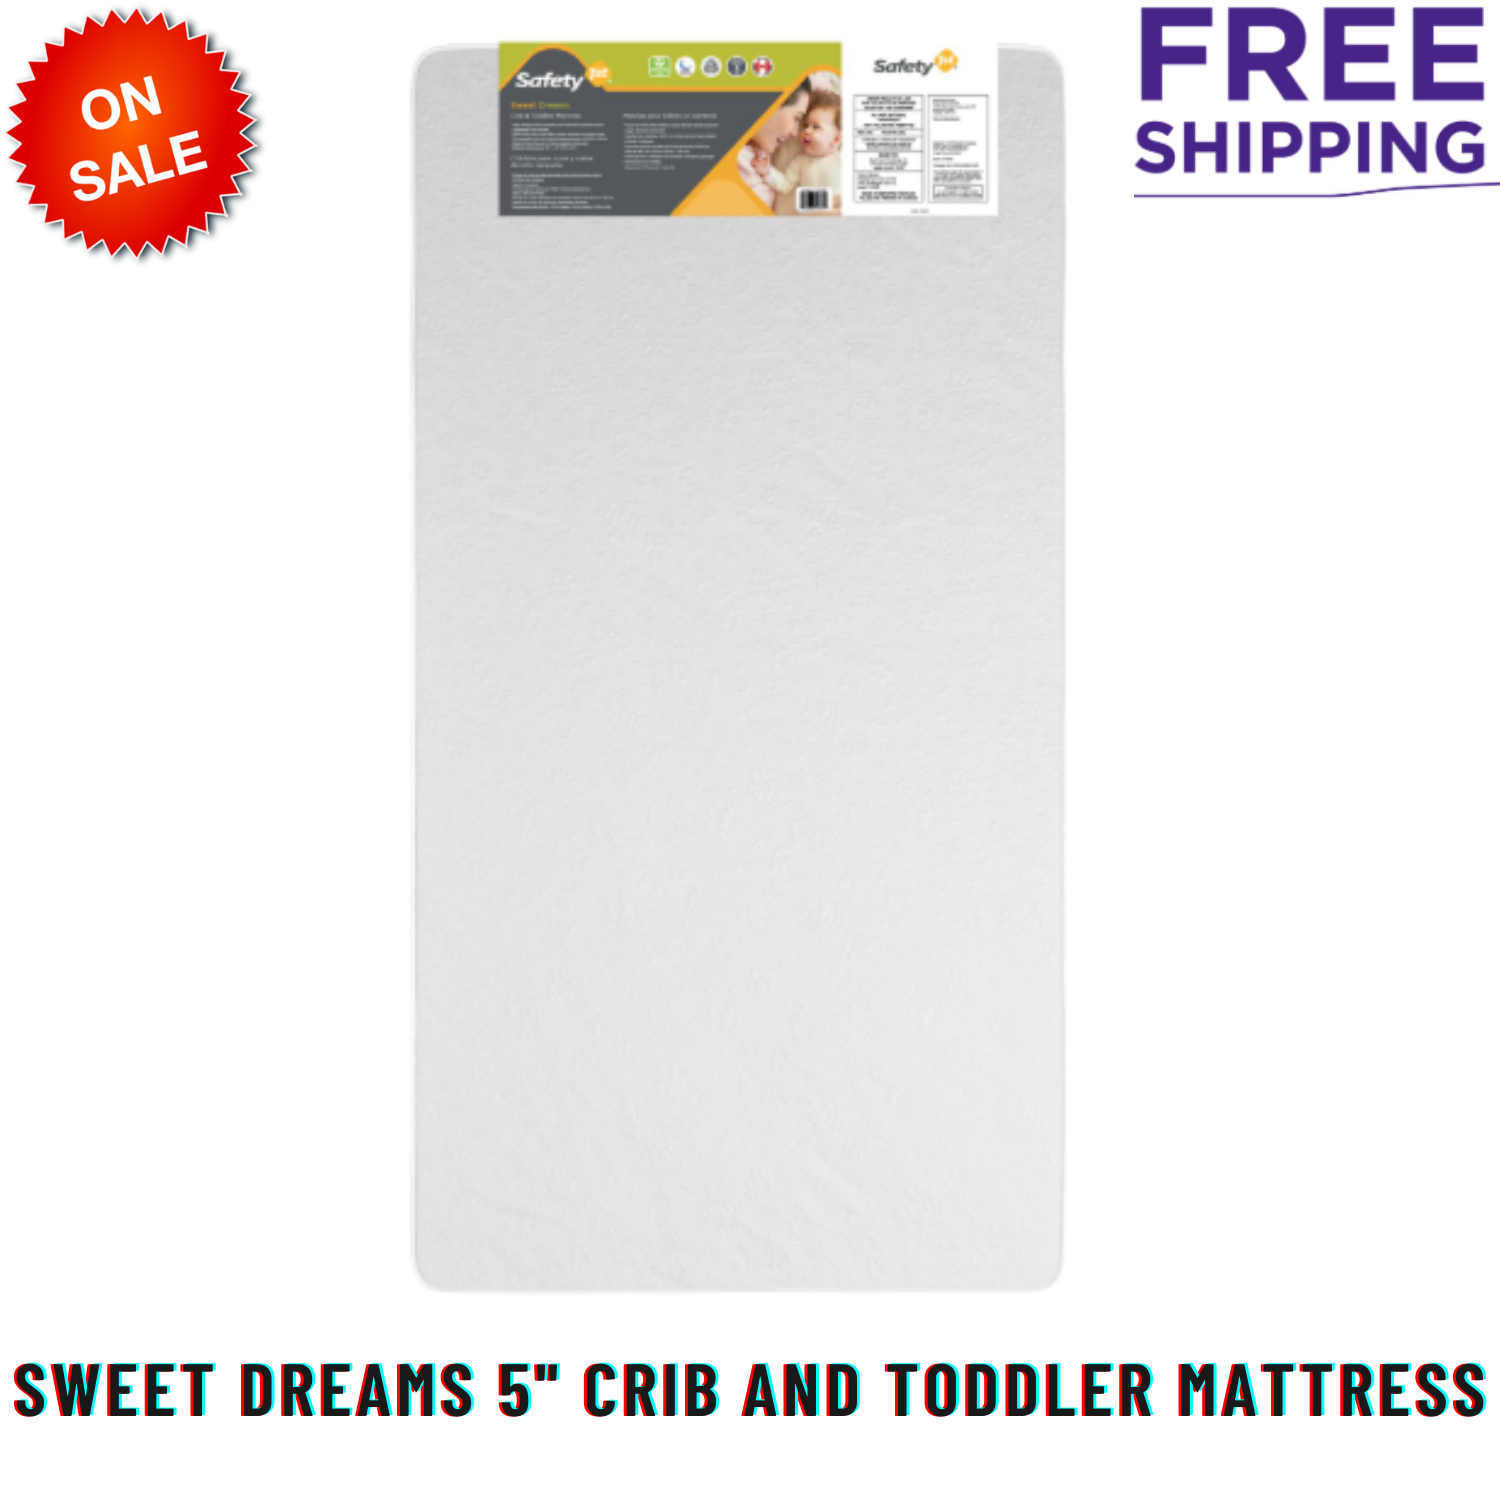 "Sweet Dreams 5"" Crib And Toddler Mattress, Thermo-Bonded Cor"